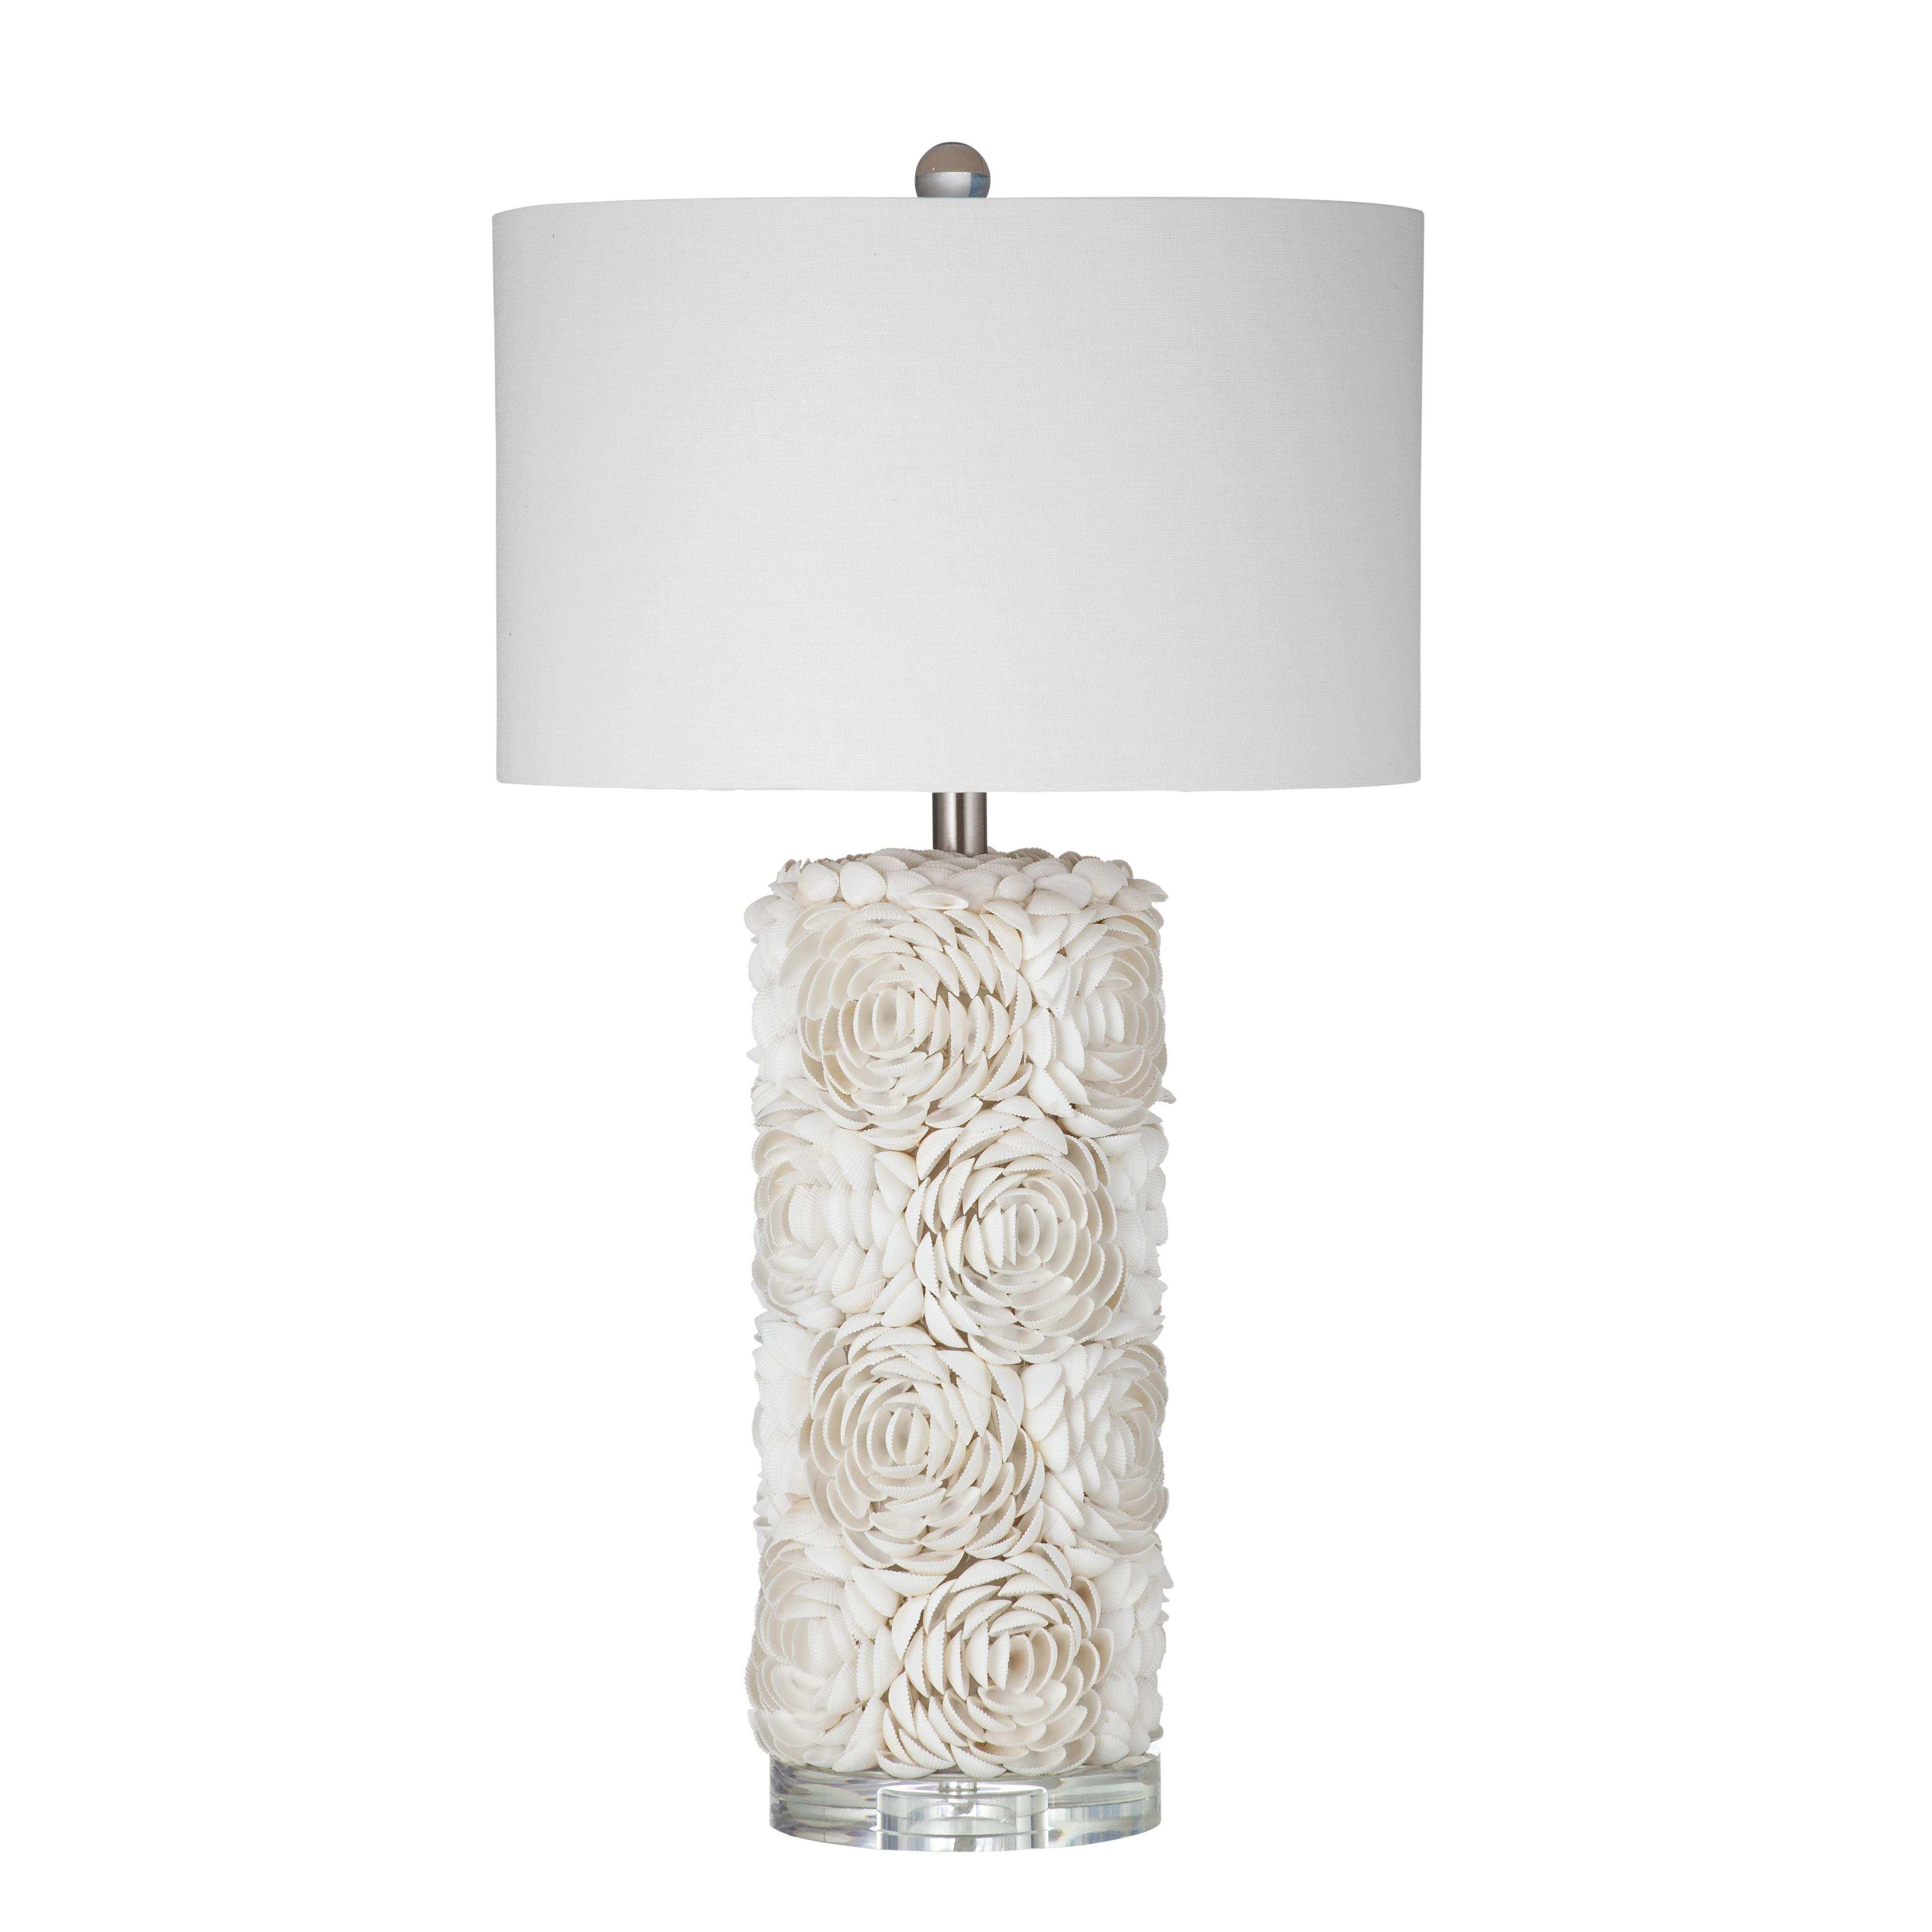 Pan Pacific Shell Table Lamp by Bassett Mirror at Nassau Furniture and Mattress